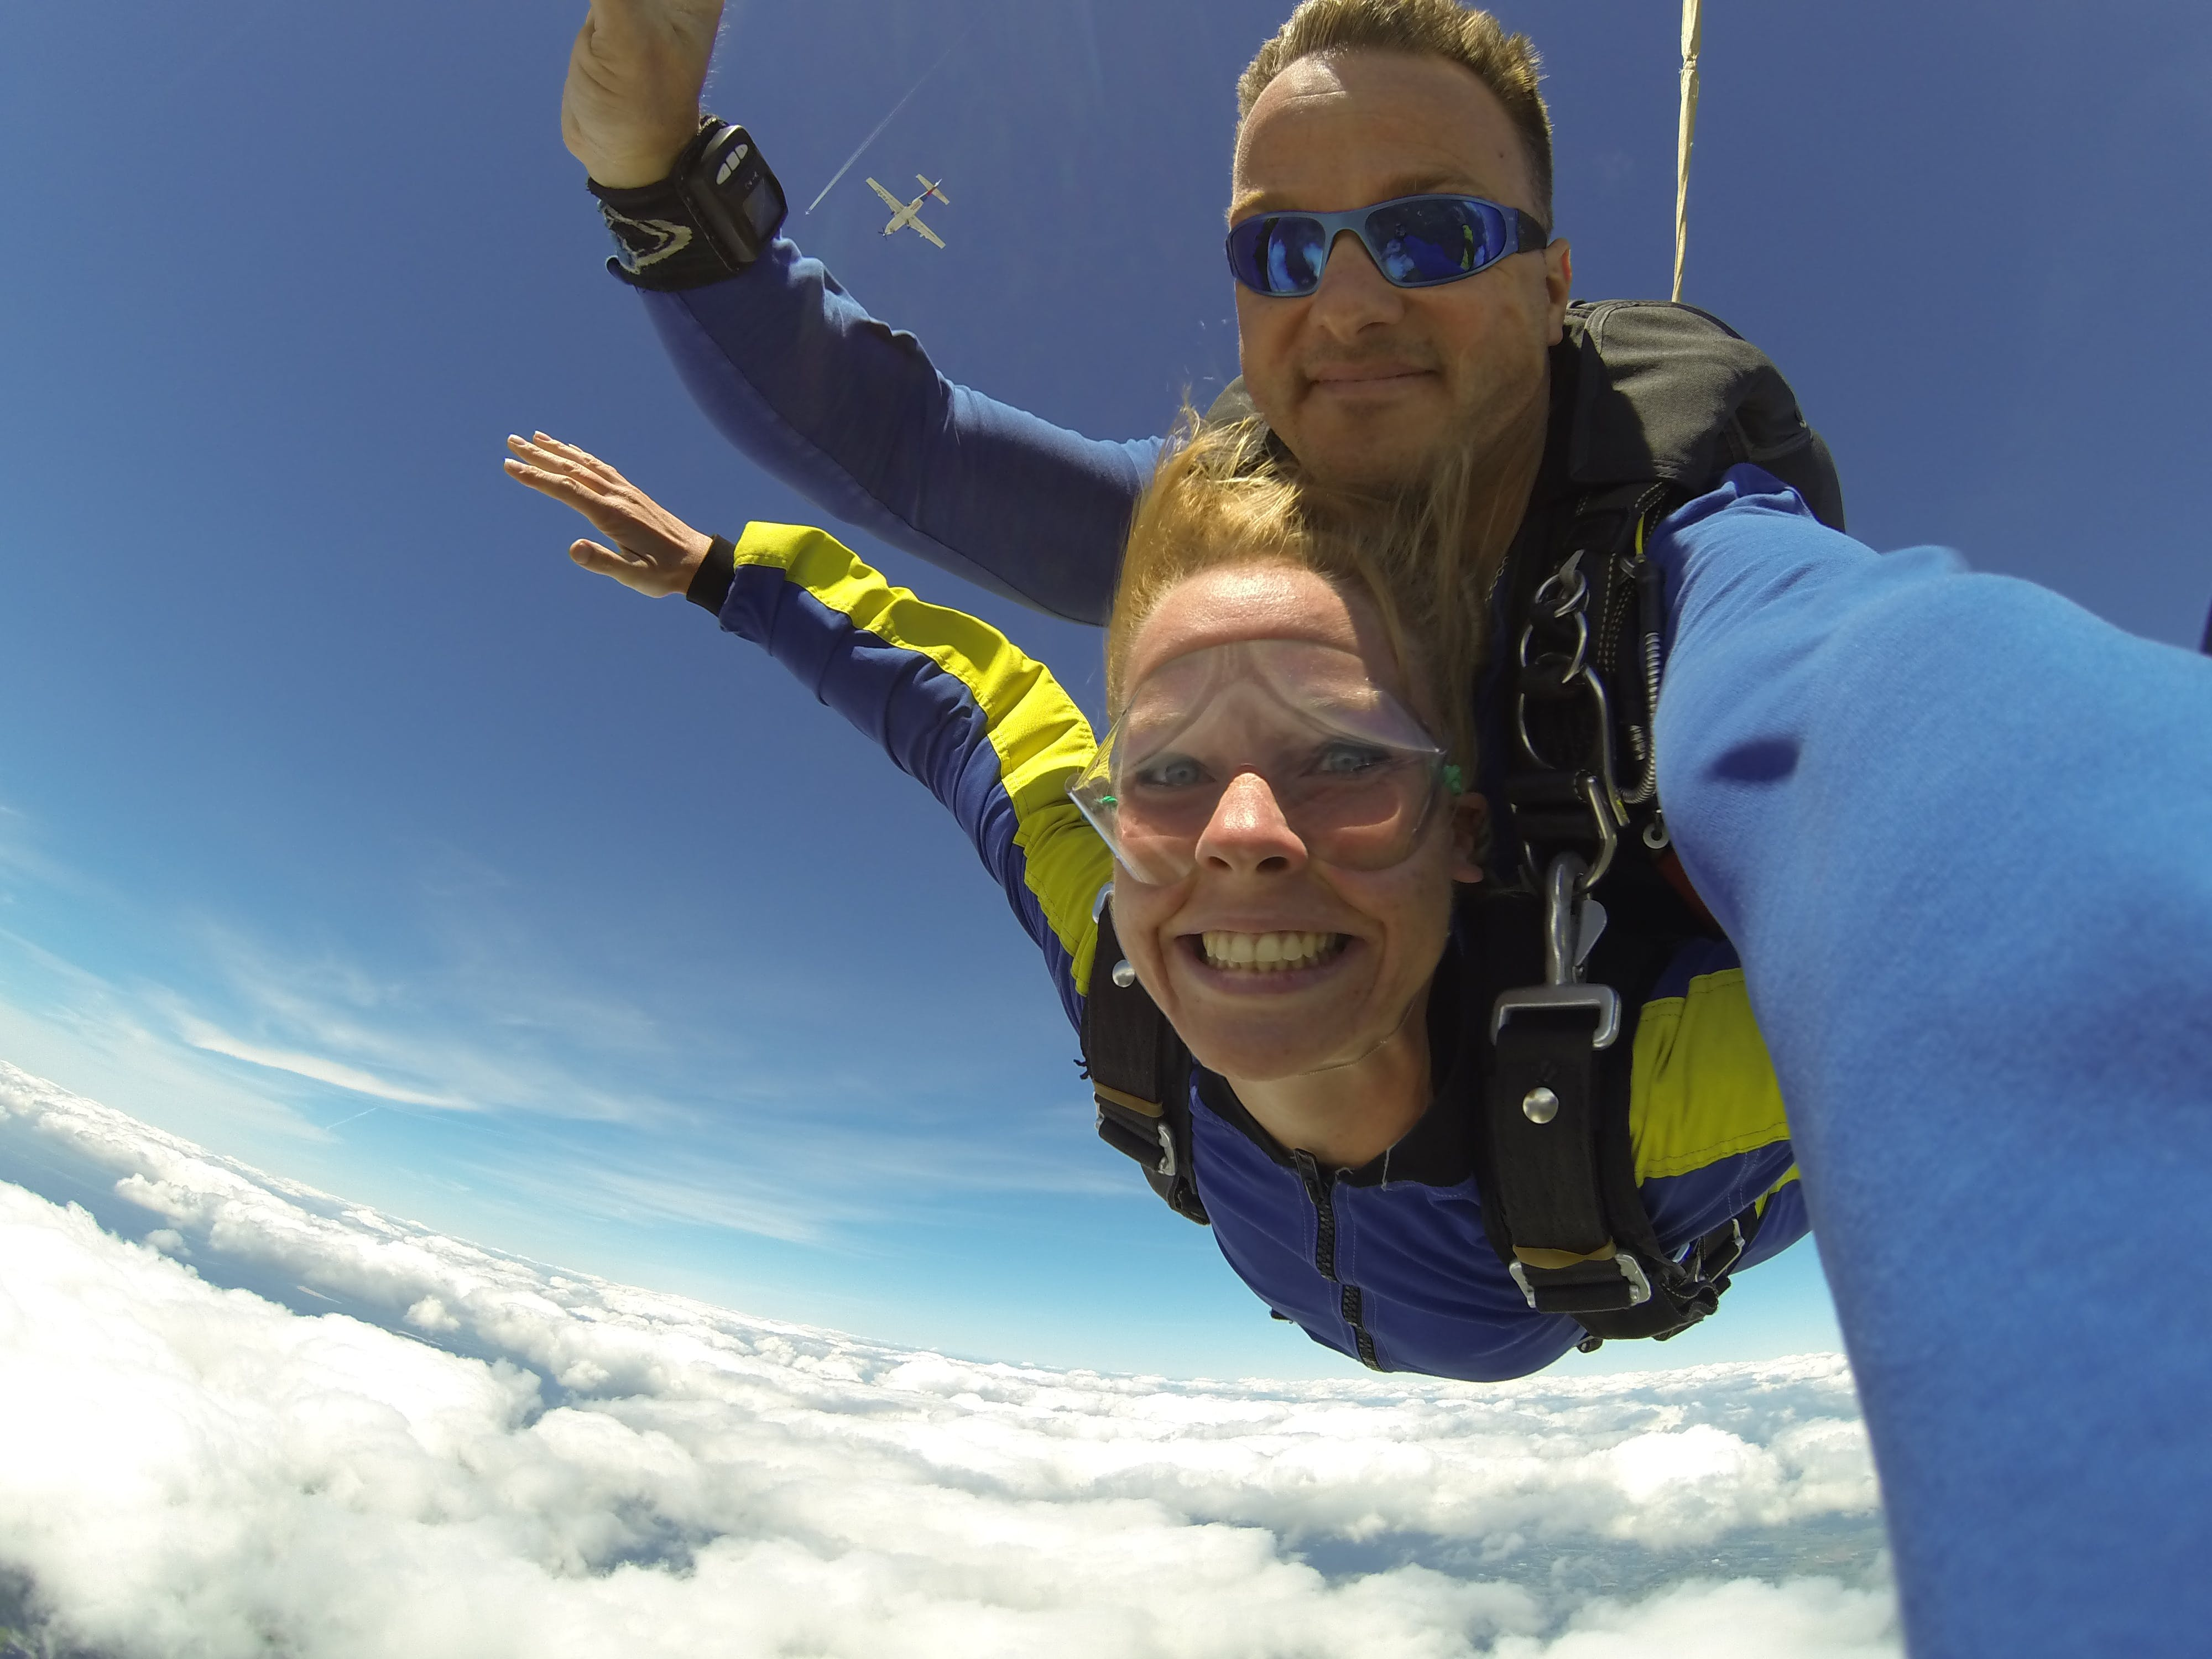 Fisheye Photography of Man and Woman Sky Diving